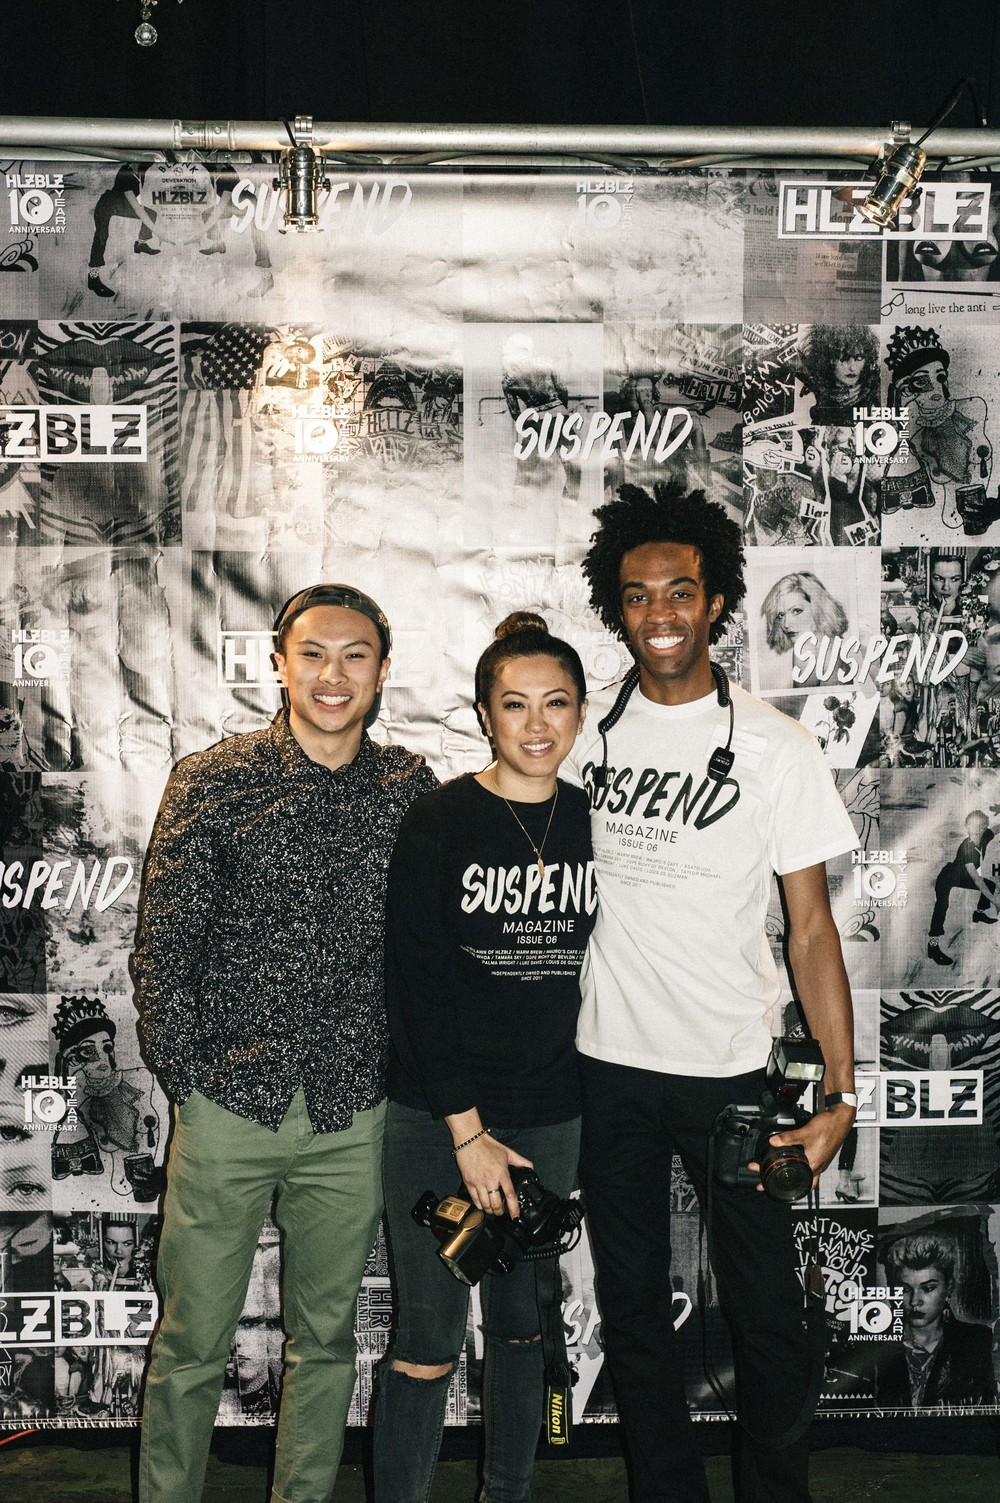 Jordan Abapo,  EIC Diane Abapo and Jonathan Tate at the ISSUE 06 Launch x HLZBLZ 10Year Anniversary (Feb 11) at Globe Theater. / Photo: © Jordan Abapo for SUSPEND Magazine